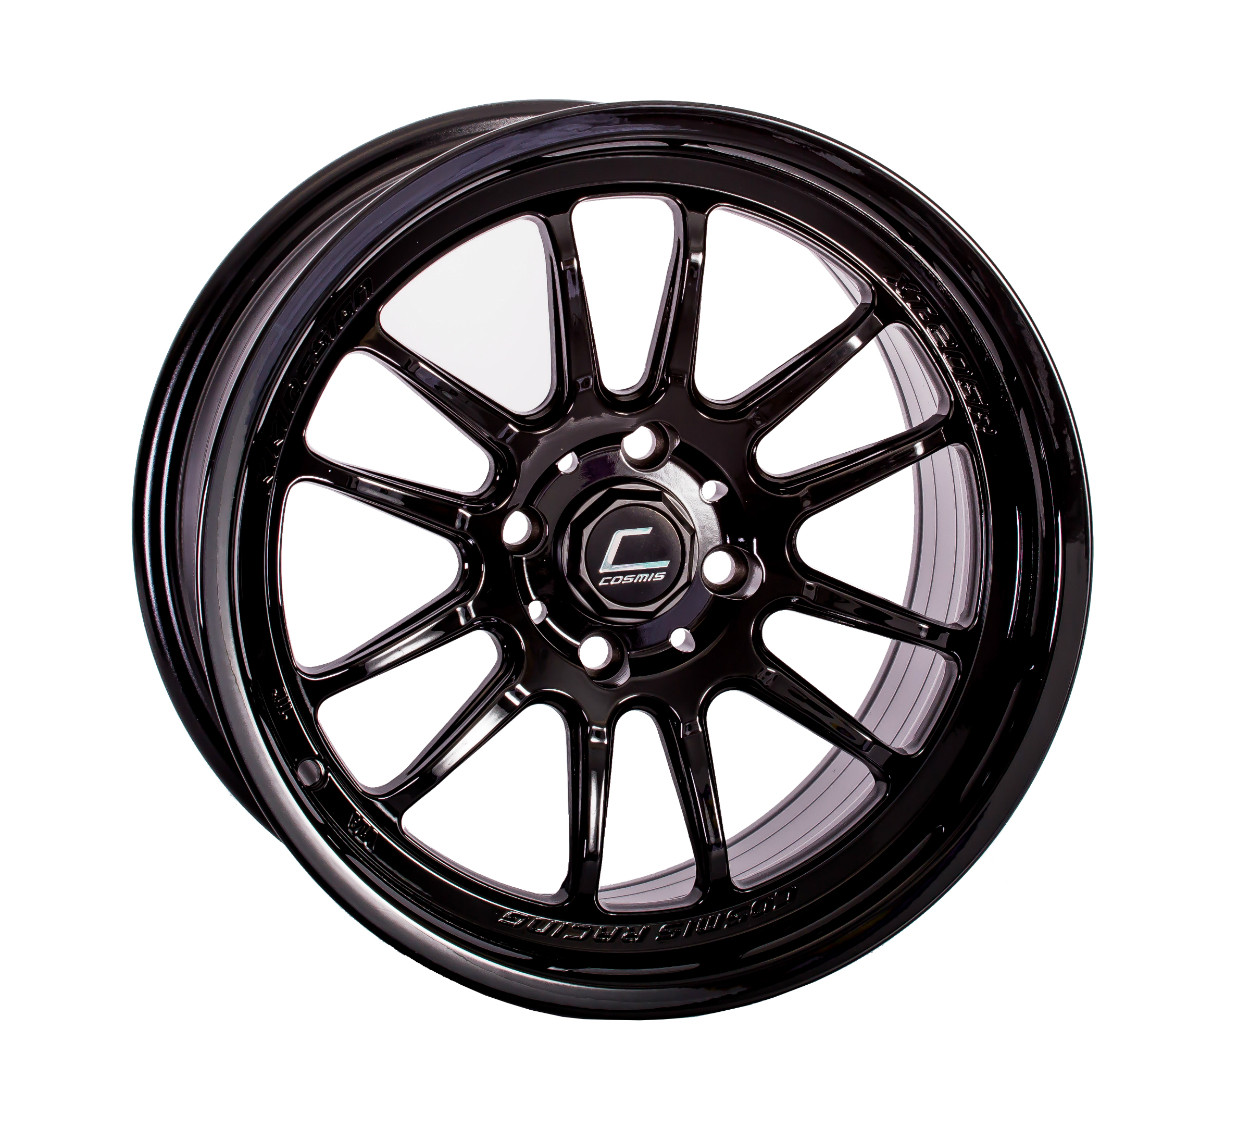 "Cosmis Racing XT-206R Wheel in 15x8"" - Black"